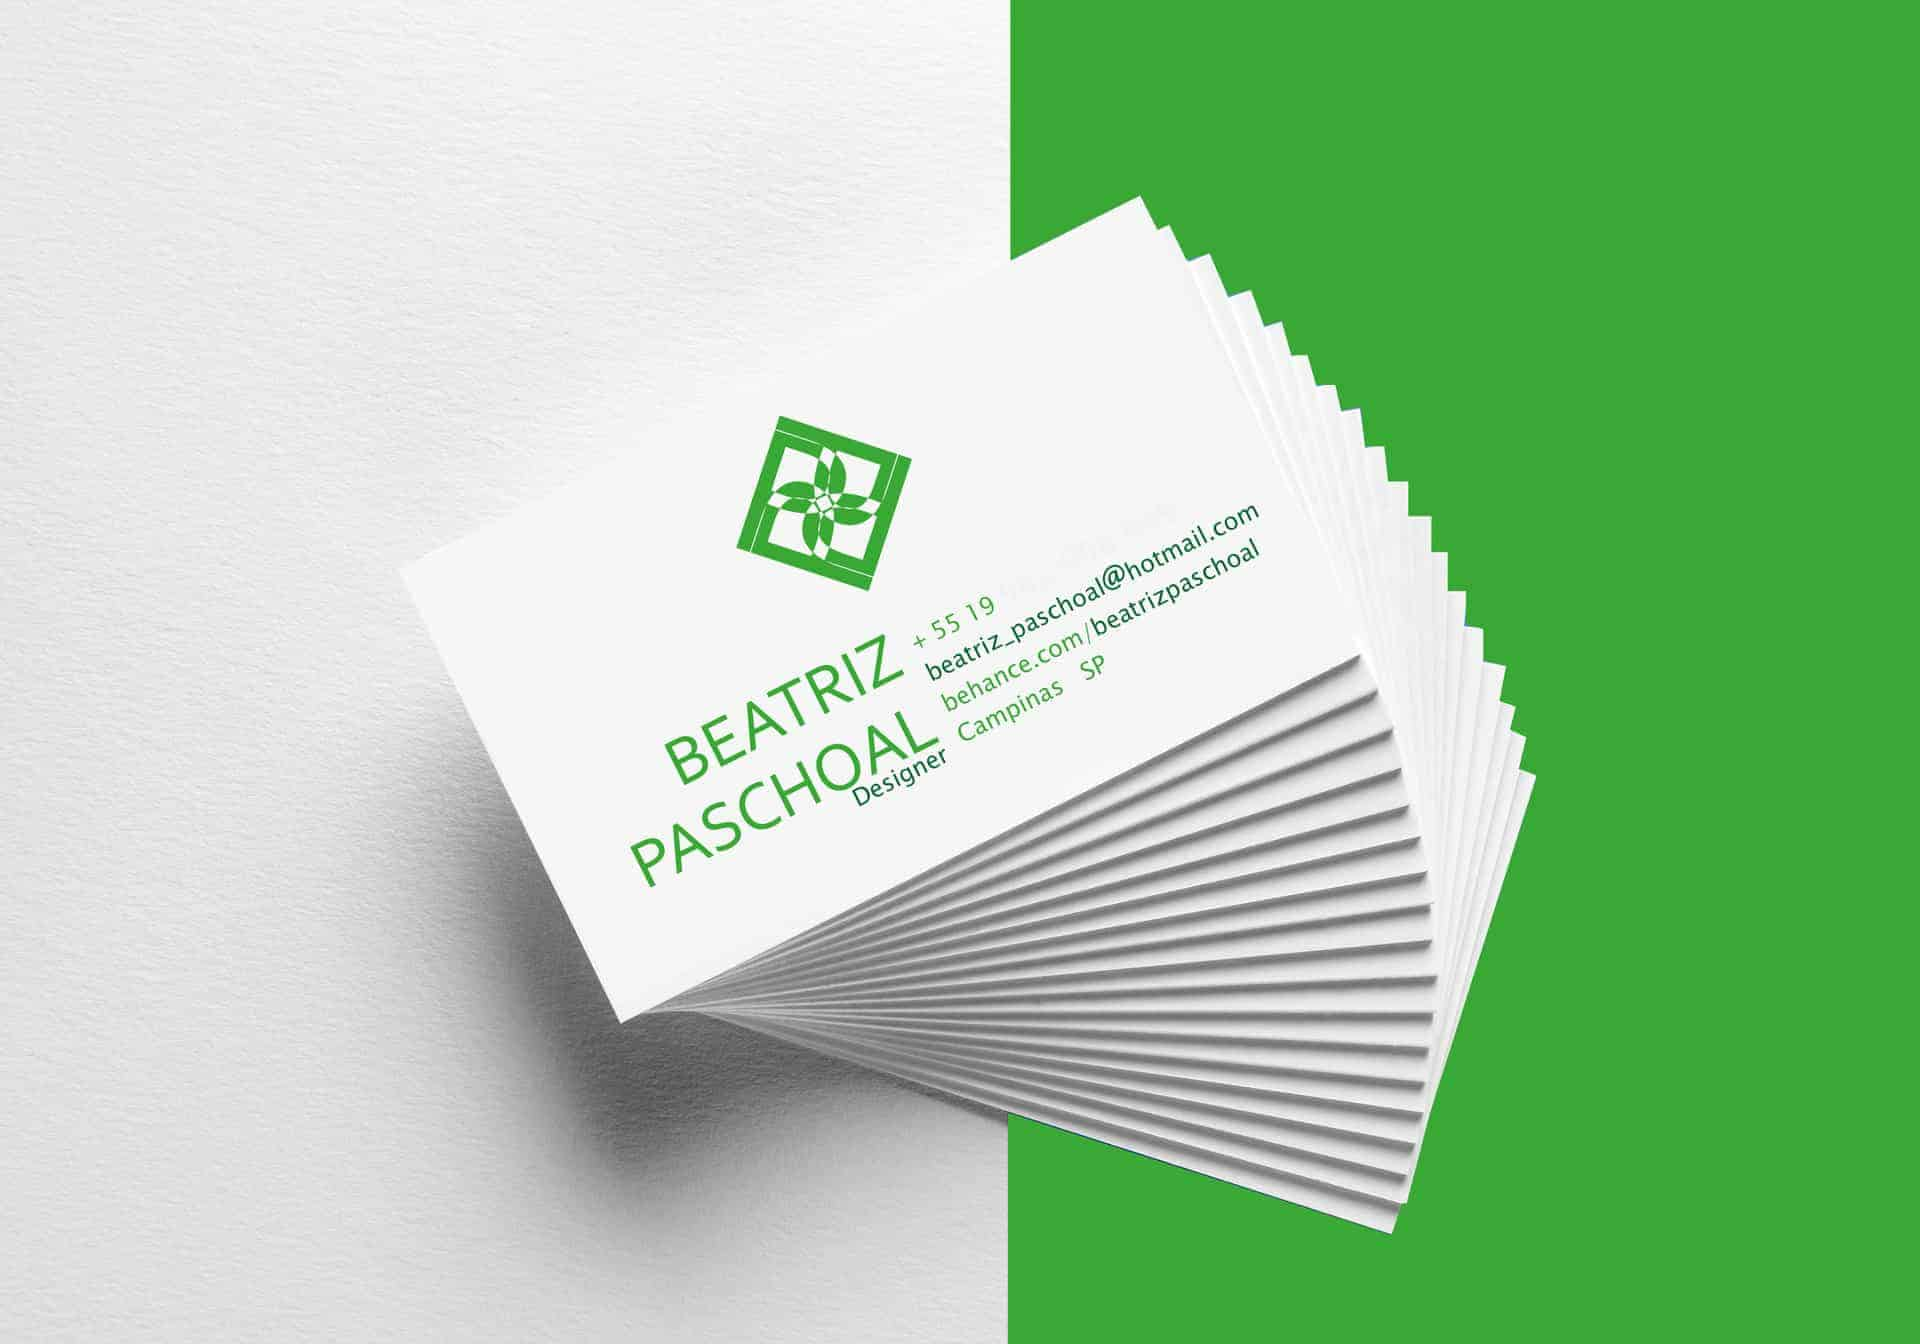 Beautiful Bp Business Card Contemporary - Business Card Ideas ...